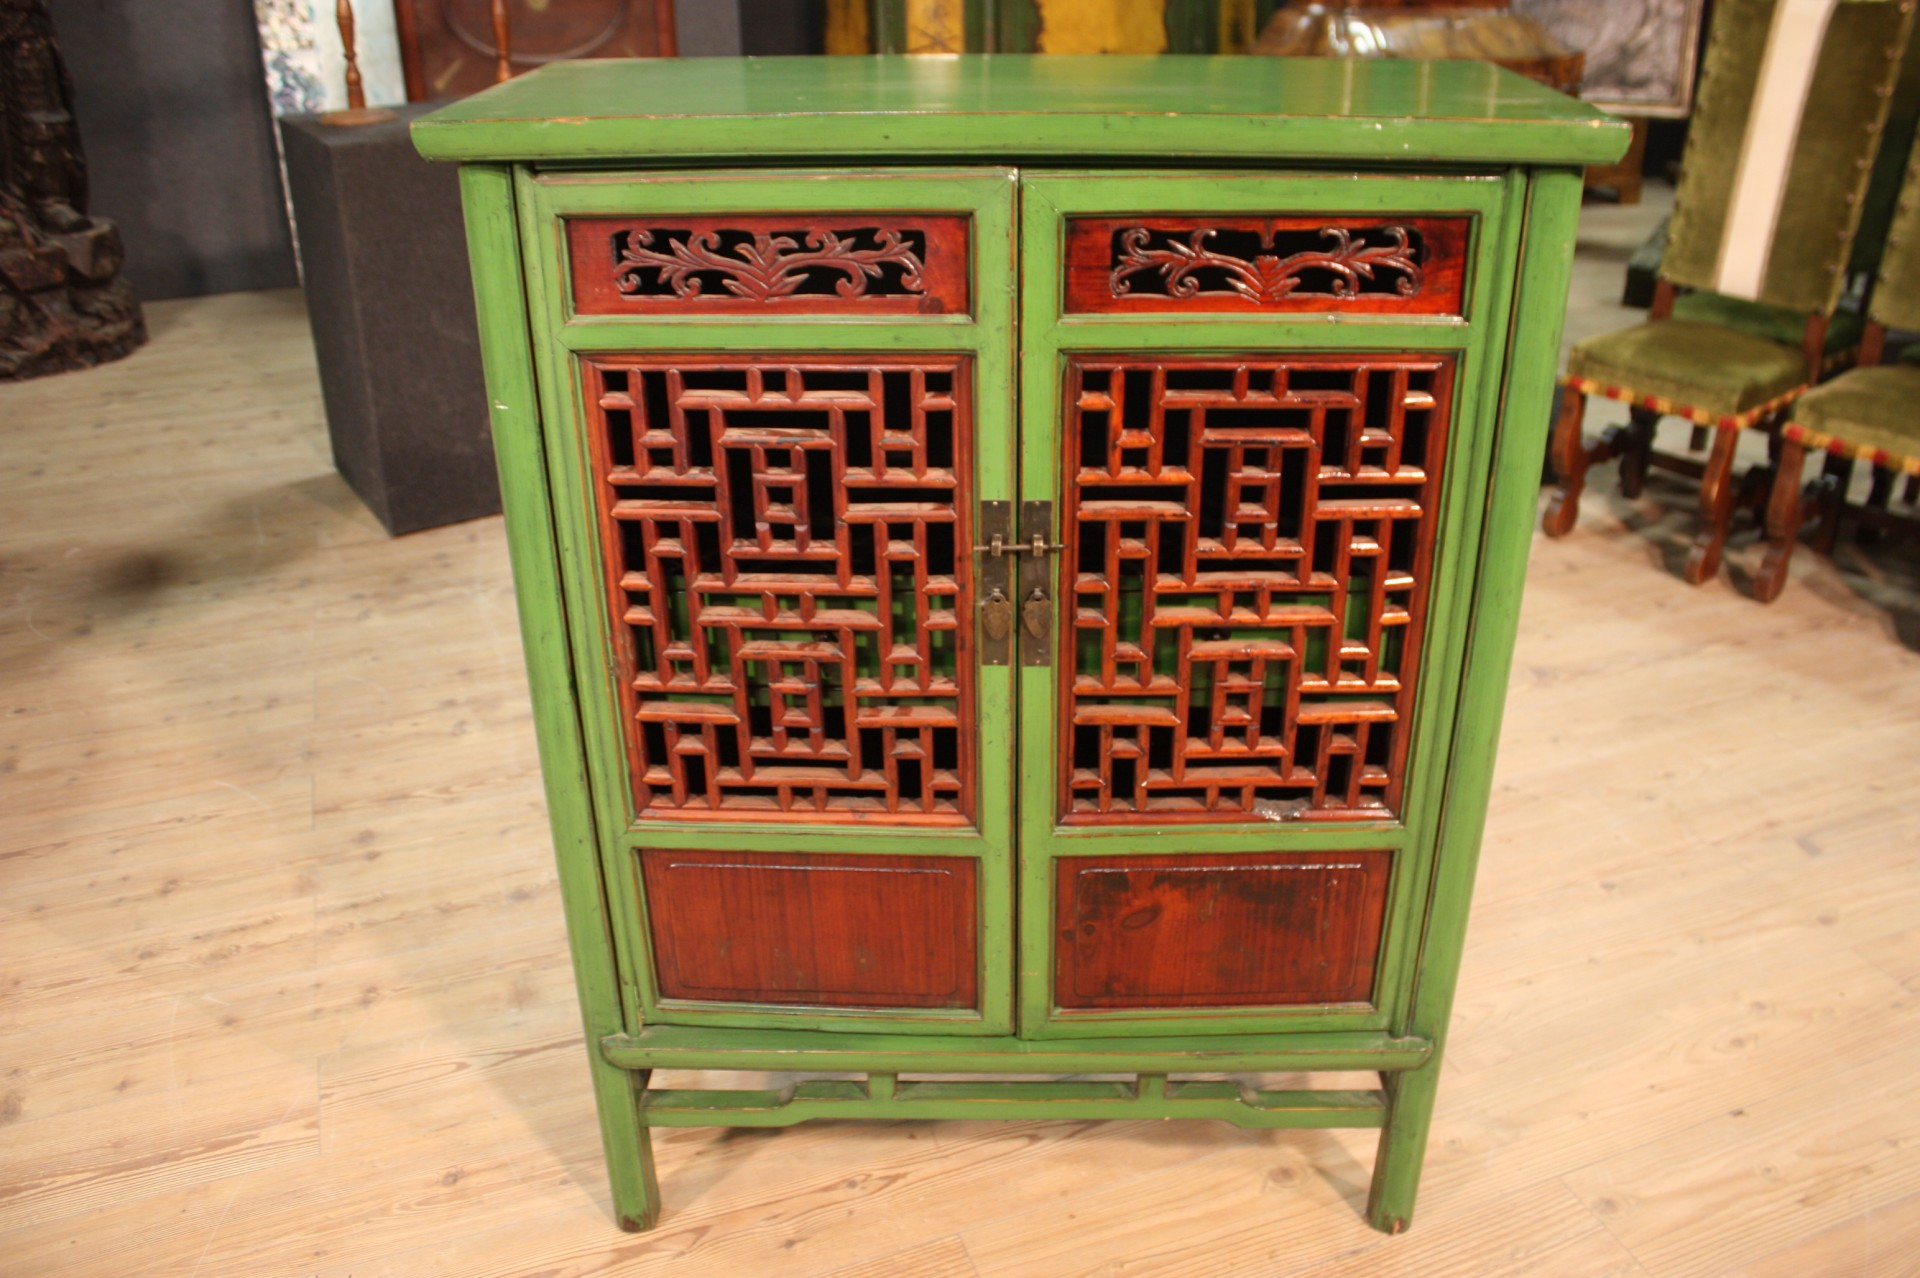 armoire commode deux portes bois peint vert meuble oriental style ancien 900 xx ebay. Black Bedroom Furniture Sets. Home Design Ideas